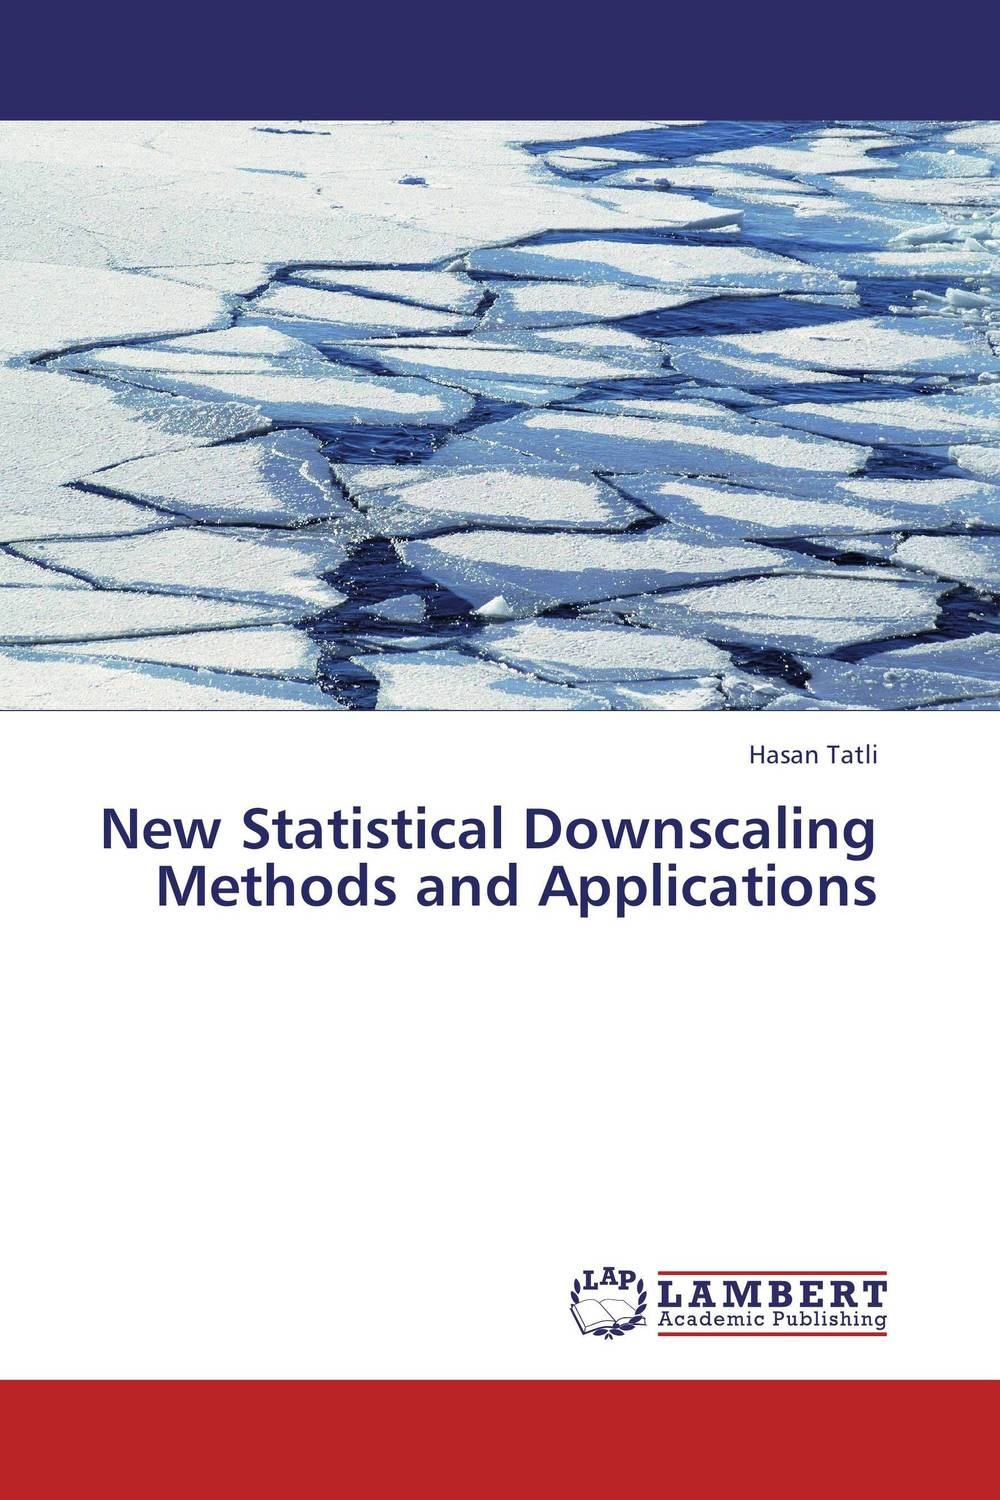 New Statistical Downscaling Methods and Applications suh jude abenwi the economic impact of climate variability